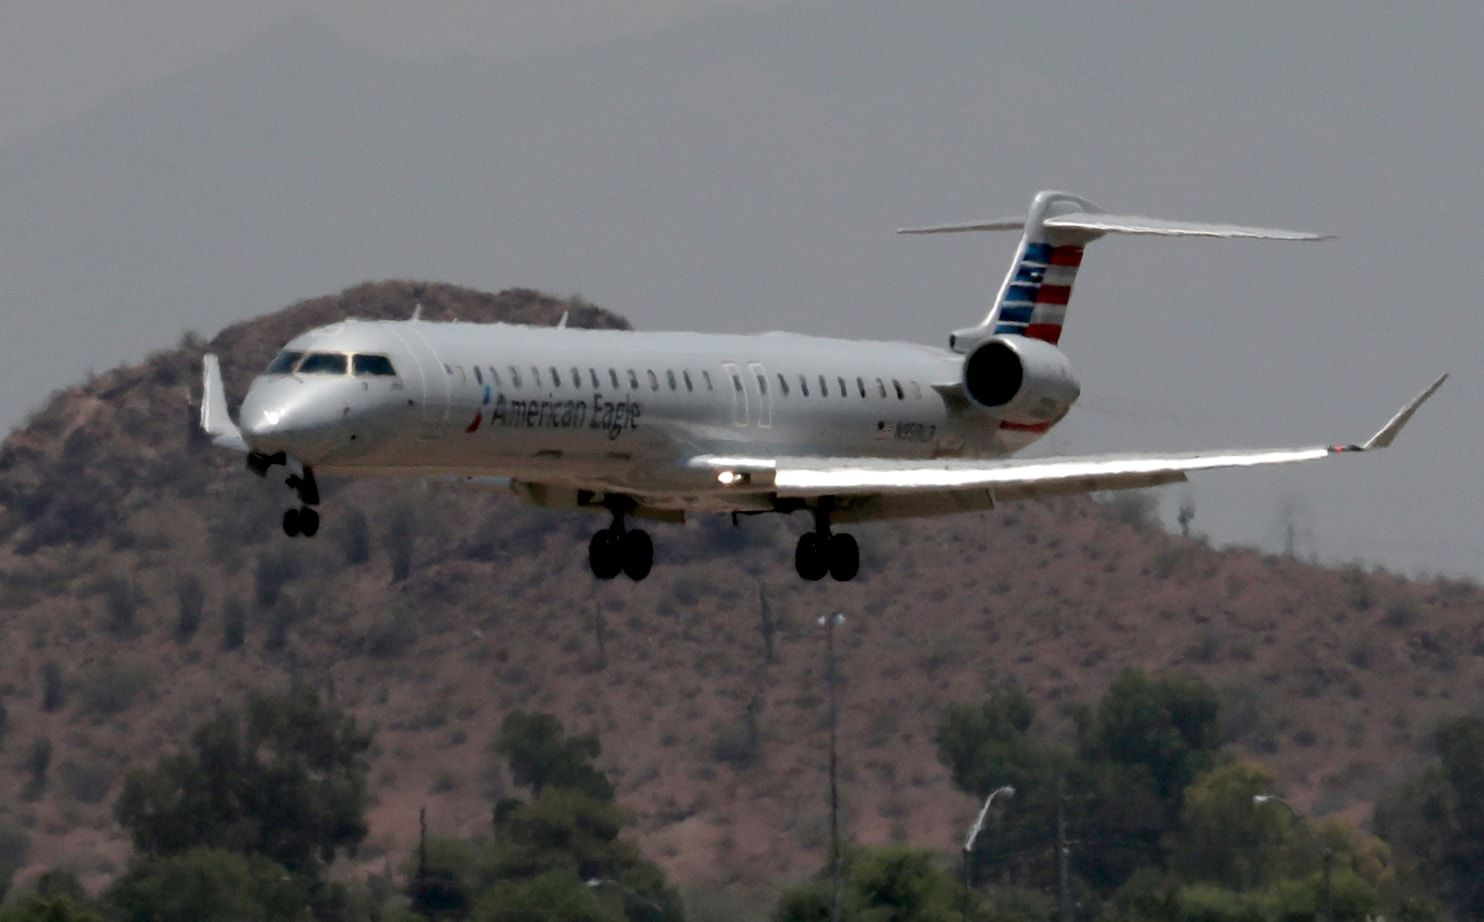 It's so hot in Phoenix that airplanes can't fly